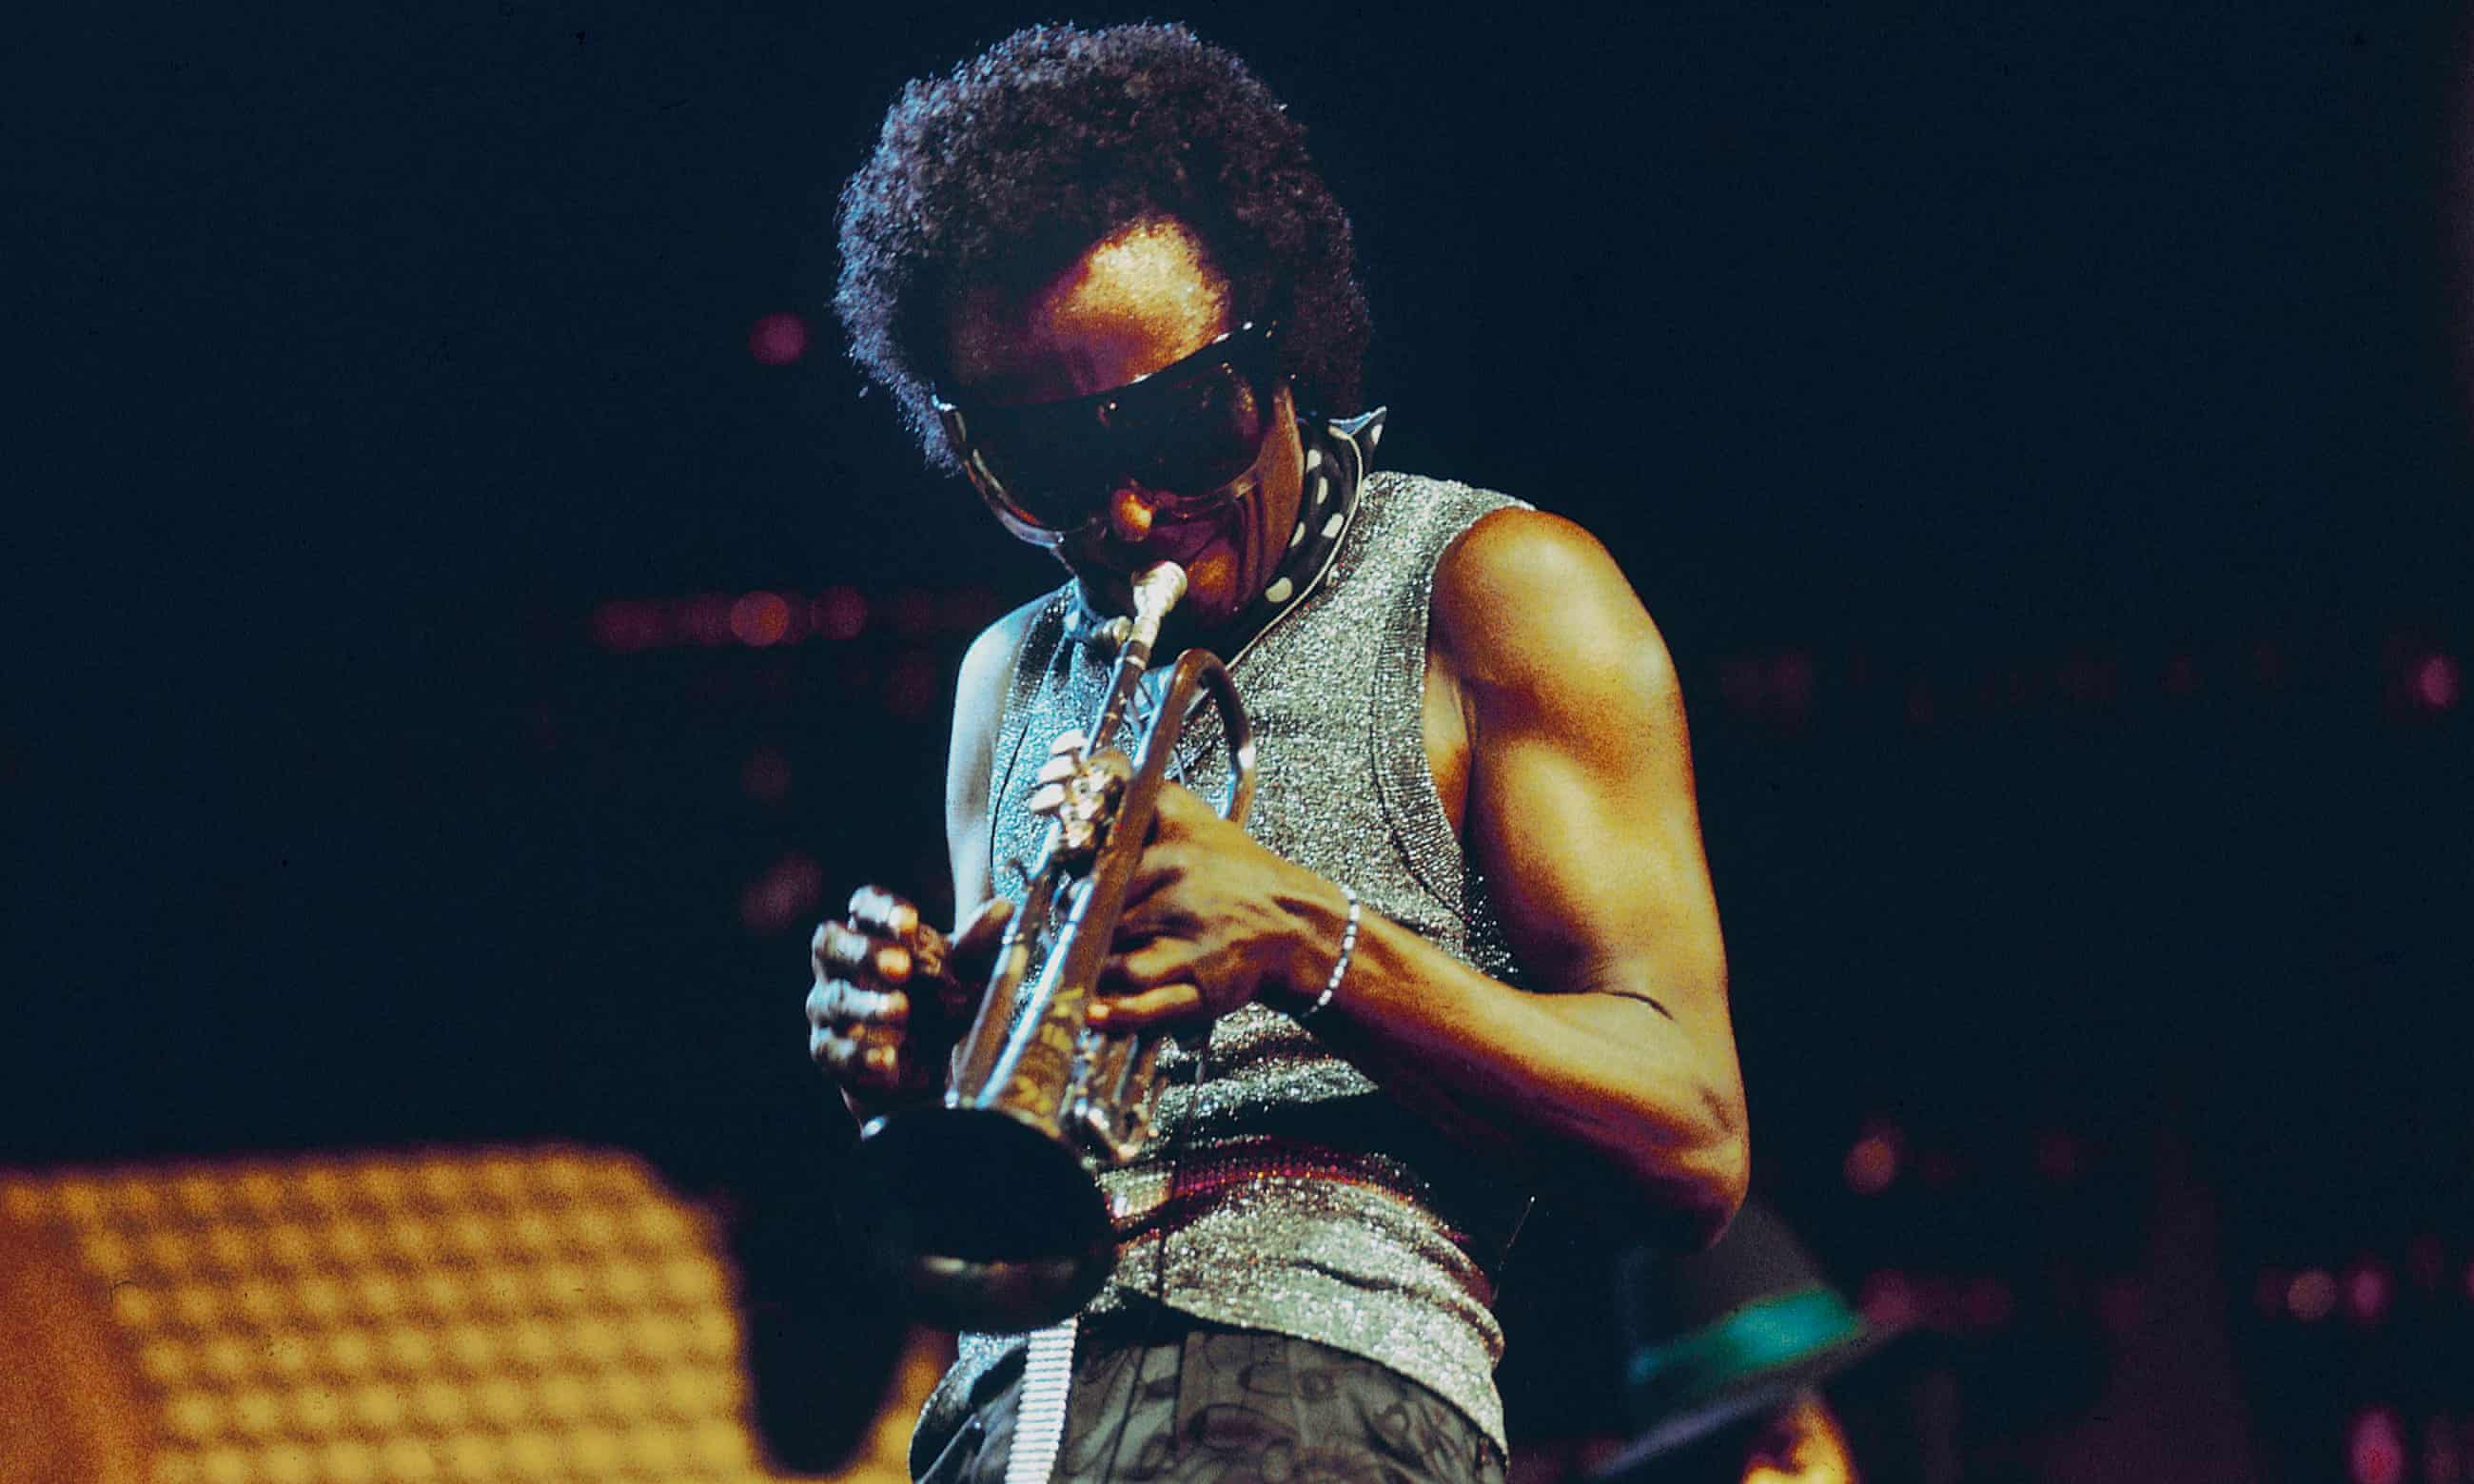 Miles Davis's 20 greatest albums – ranked!